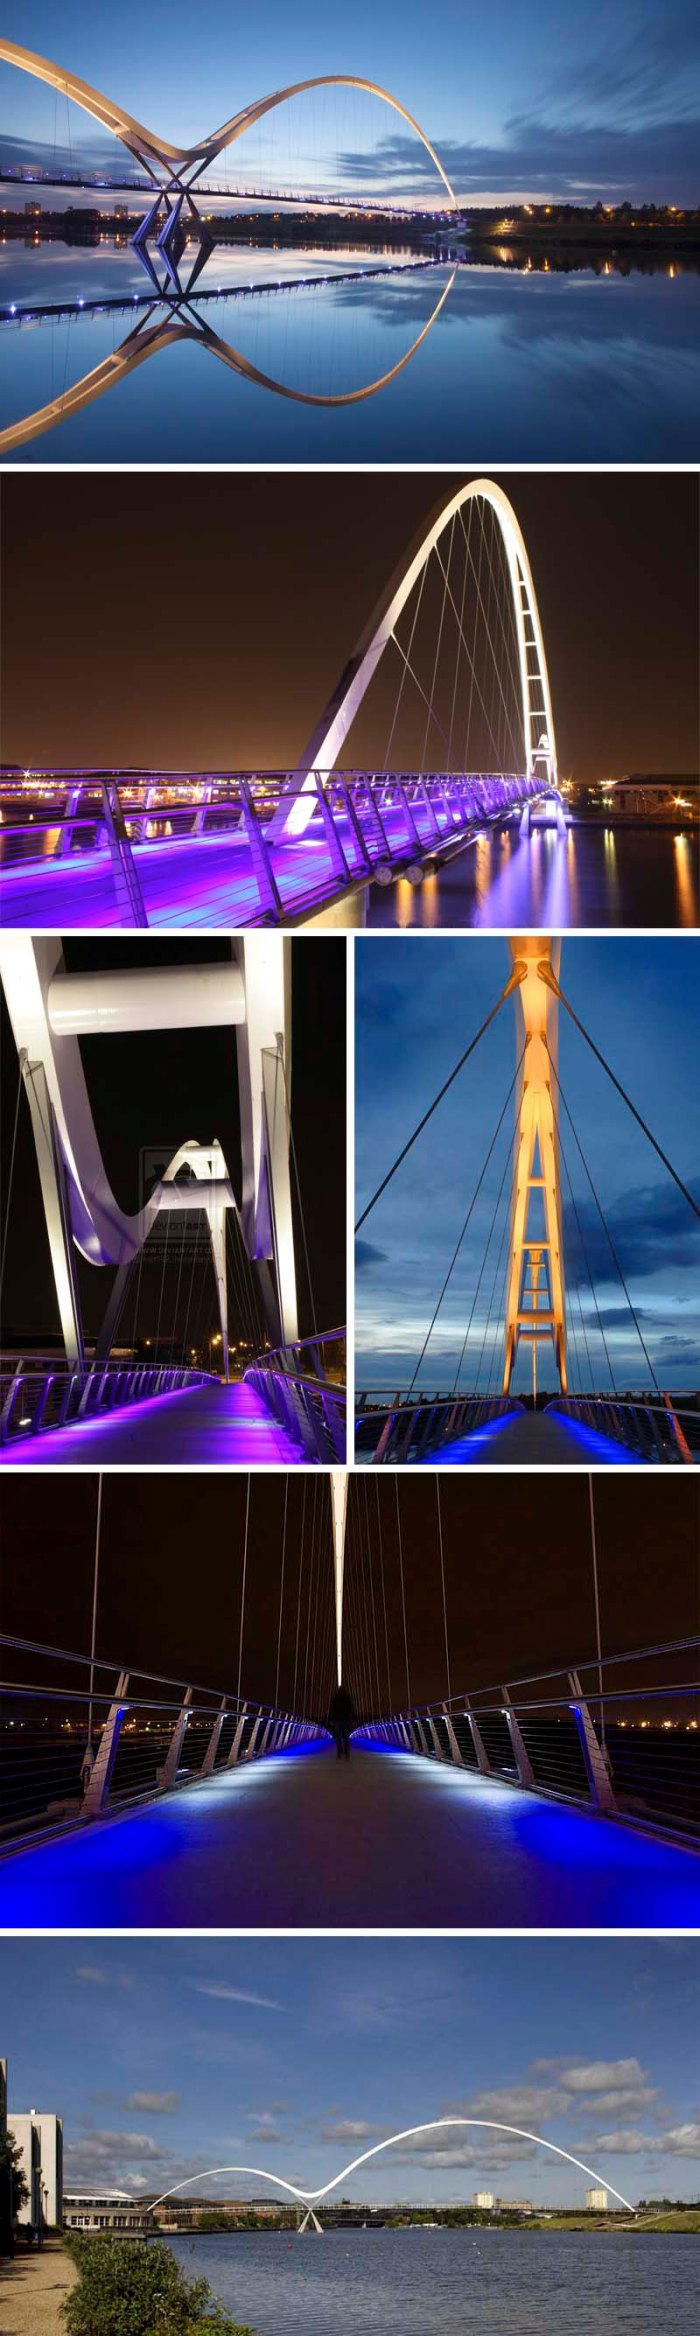 Infinity Bridge in Stockton-on-Tees, UK designed by Expedition Engineering and interactive lighting design by Speirs and Majors.